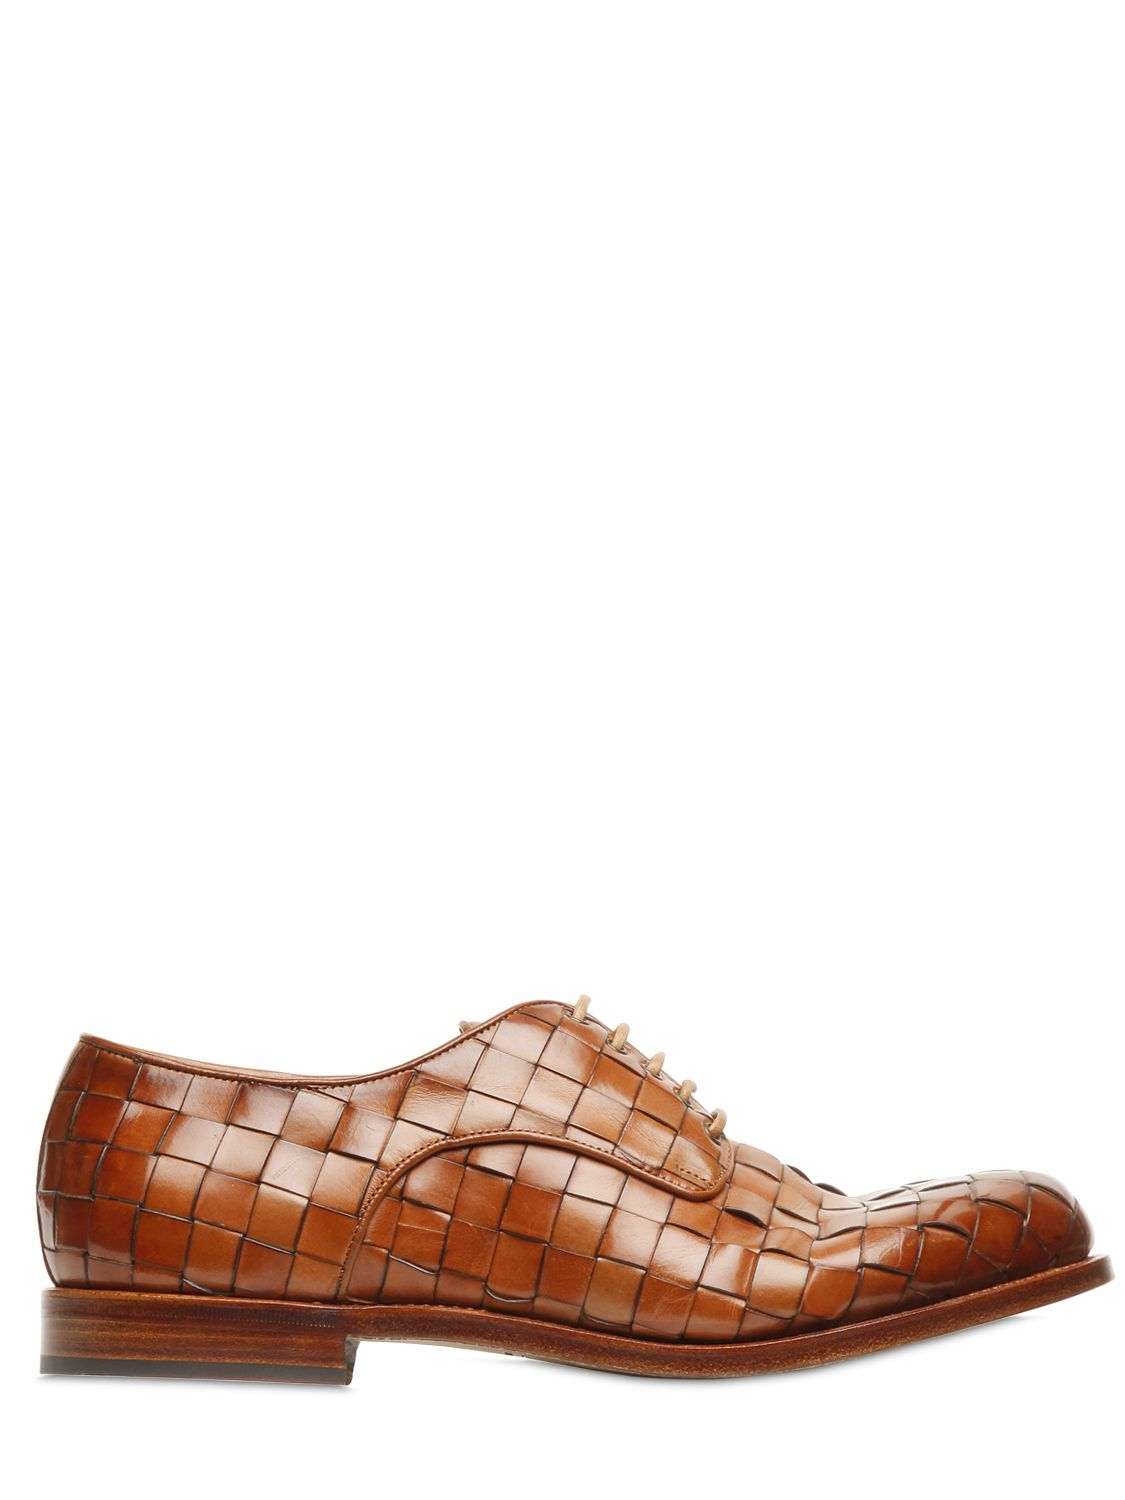 santoni woven leather derby lace up shoes in brown